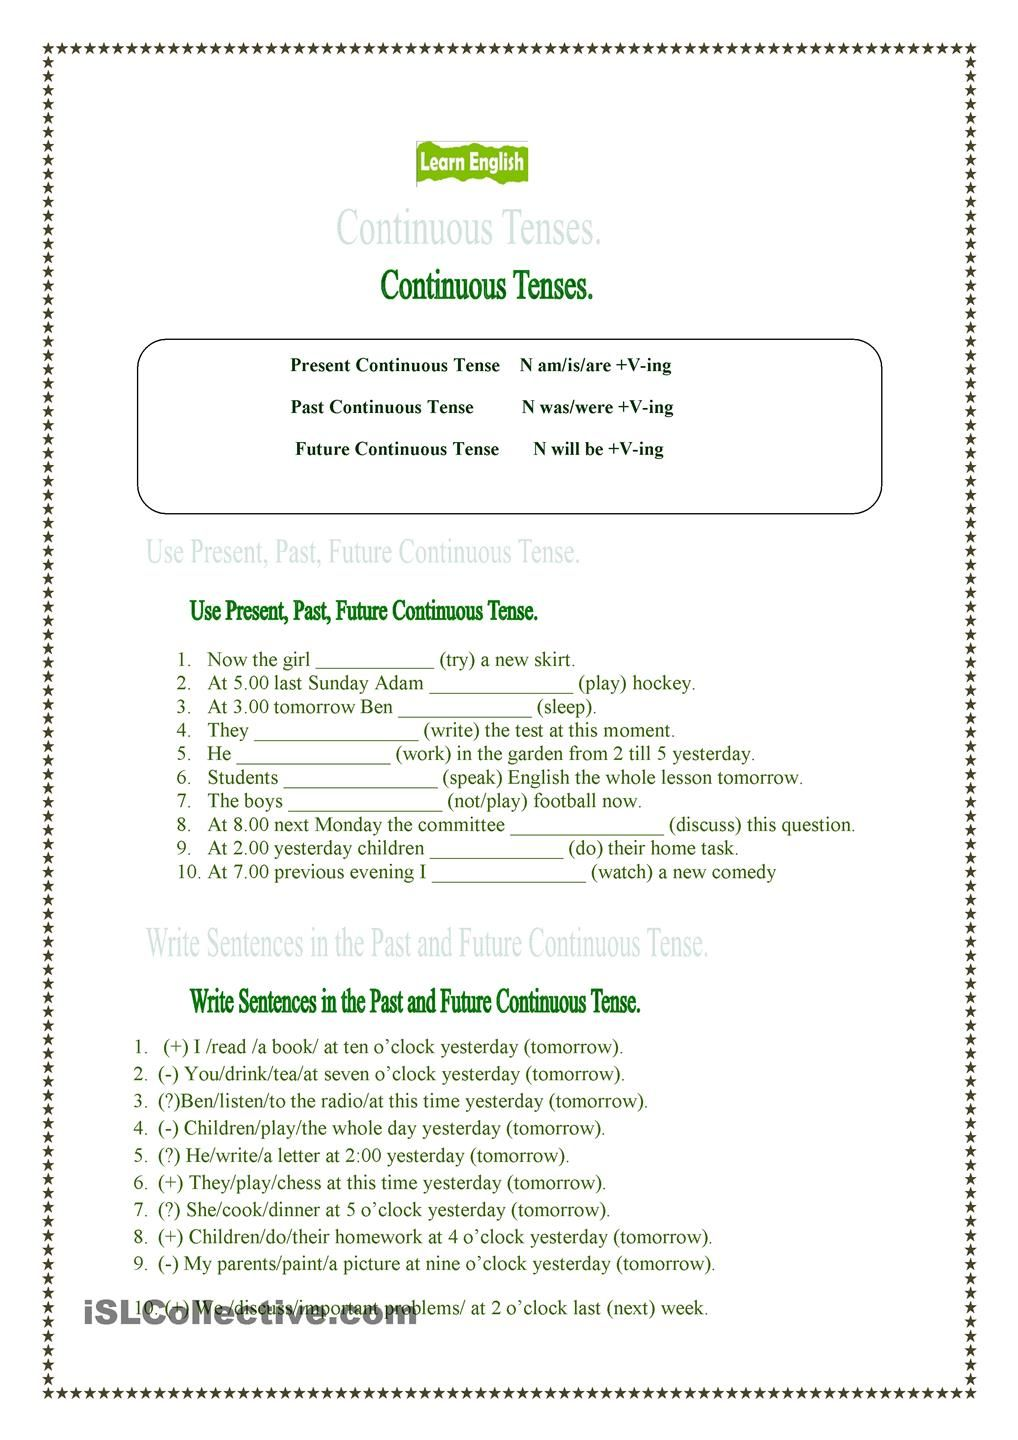 Present Past And Future Continuous Tenses Kindergarten Phonics Worksheets Simple Past Tense Worksheet Phonics Worksheets [ 1440 x 1018 Pixel ]